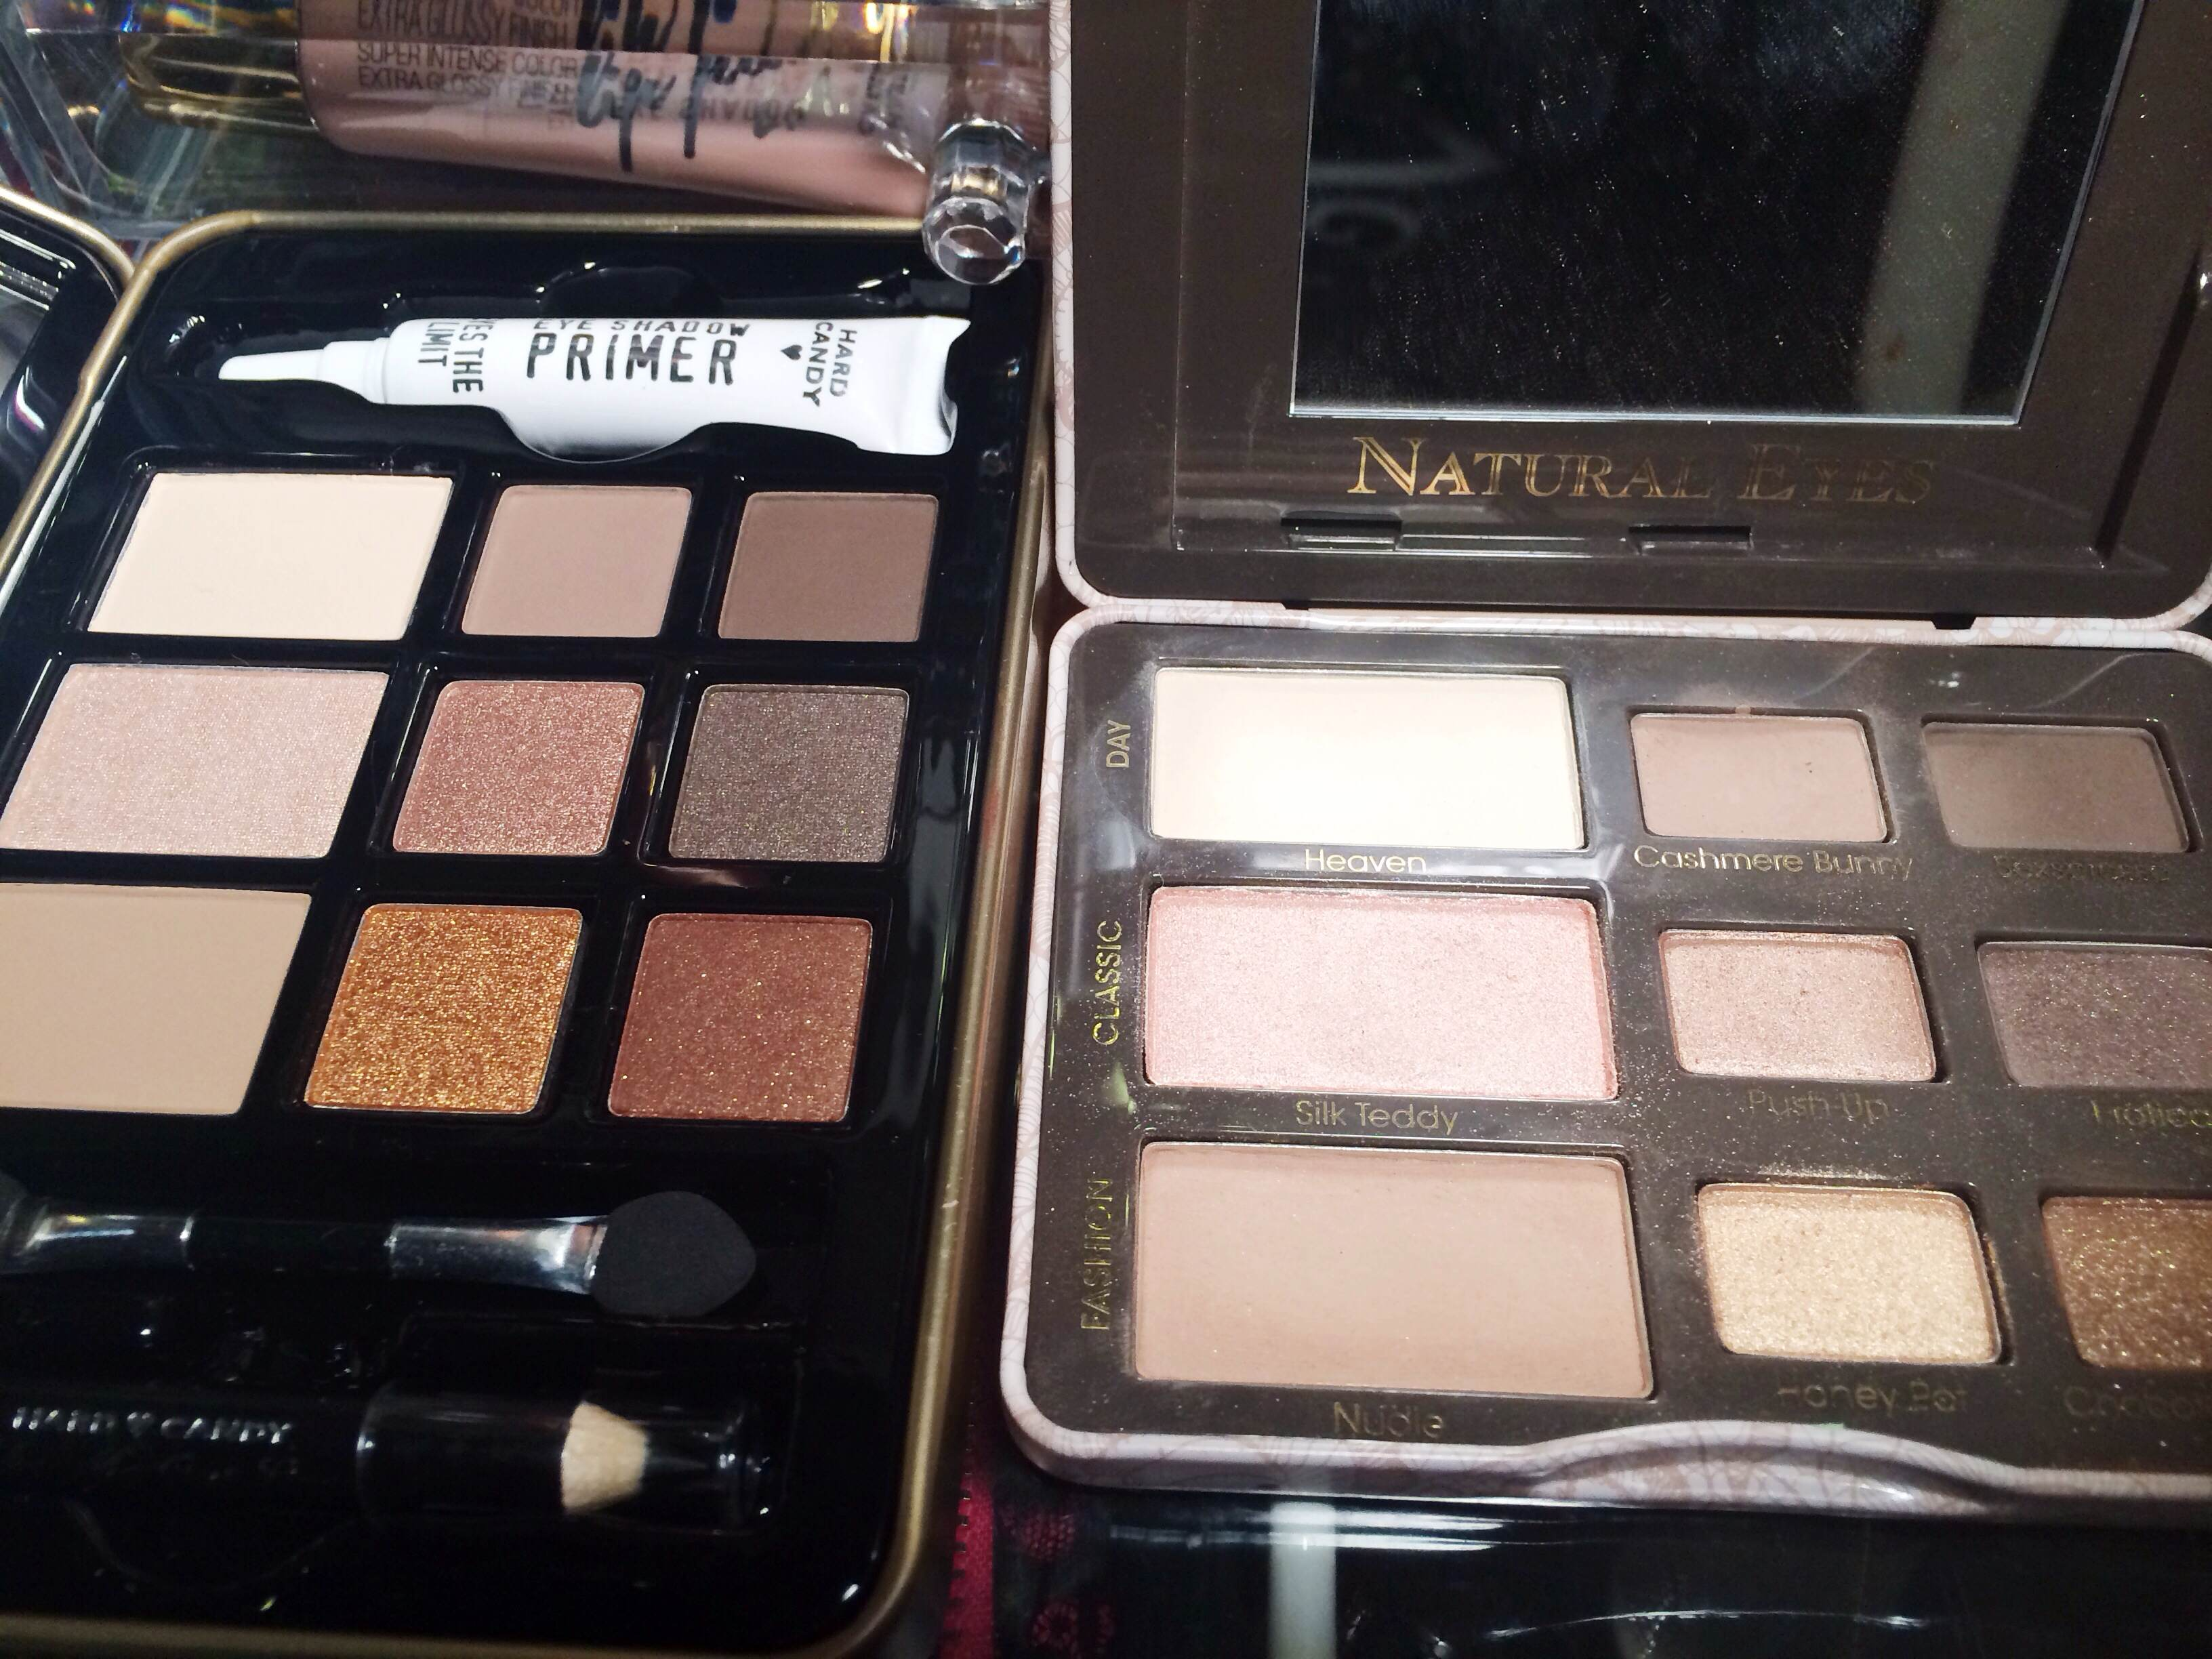 Hard Candy Natural Eyes Potential Dupe Luna Faye Beauty